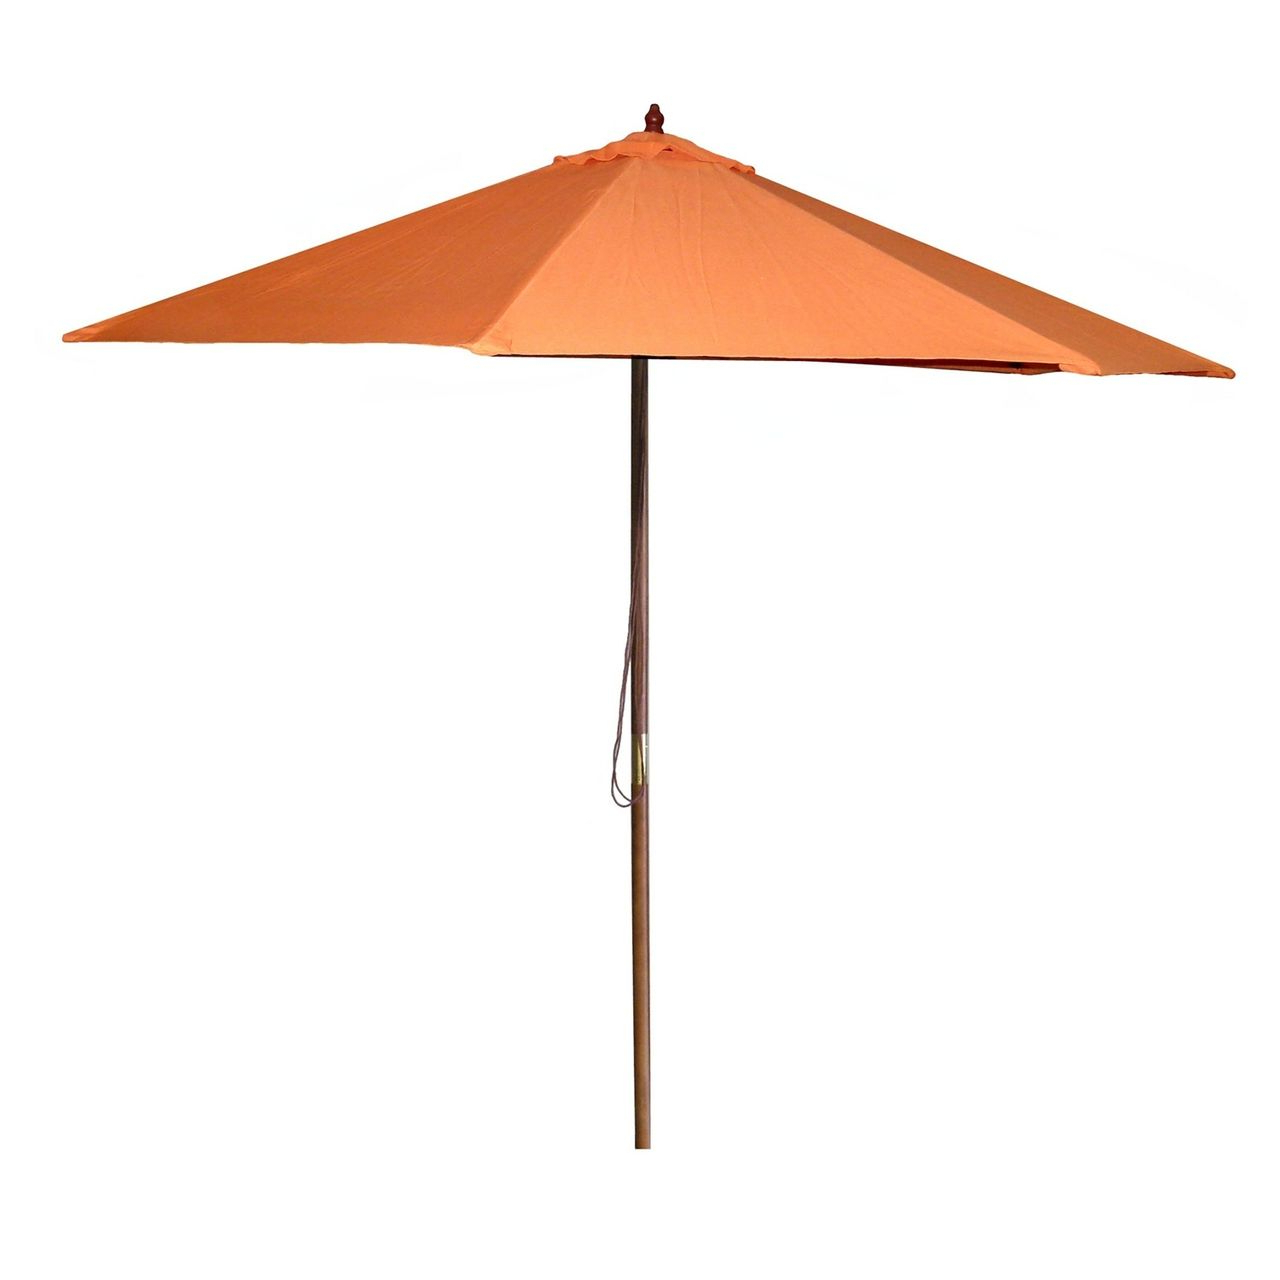 Popular Devansh Market Umbrellas With 9 Ft Patio Pulley Umbrella With Wood Pole And Orange Canopy (View 20 of 20)